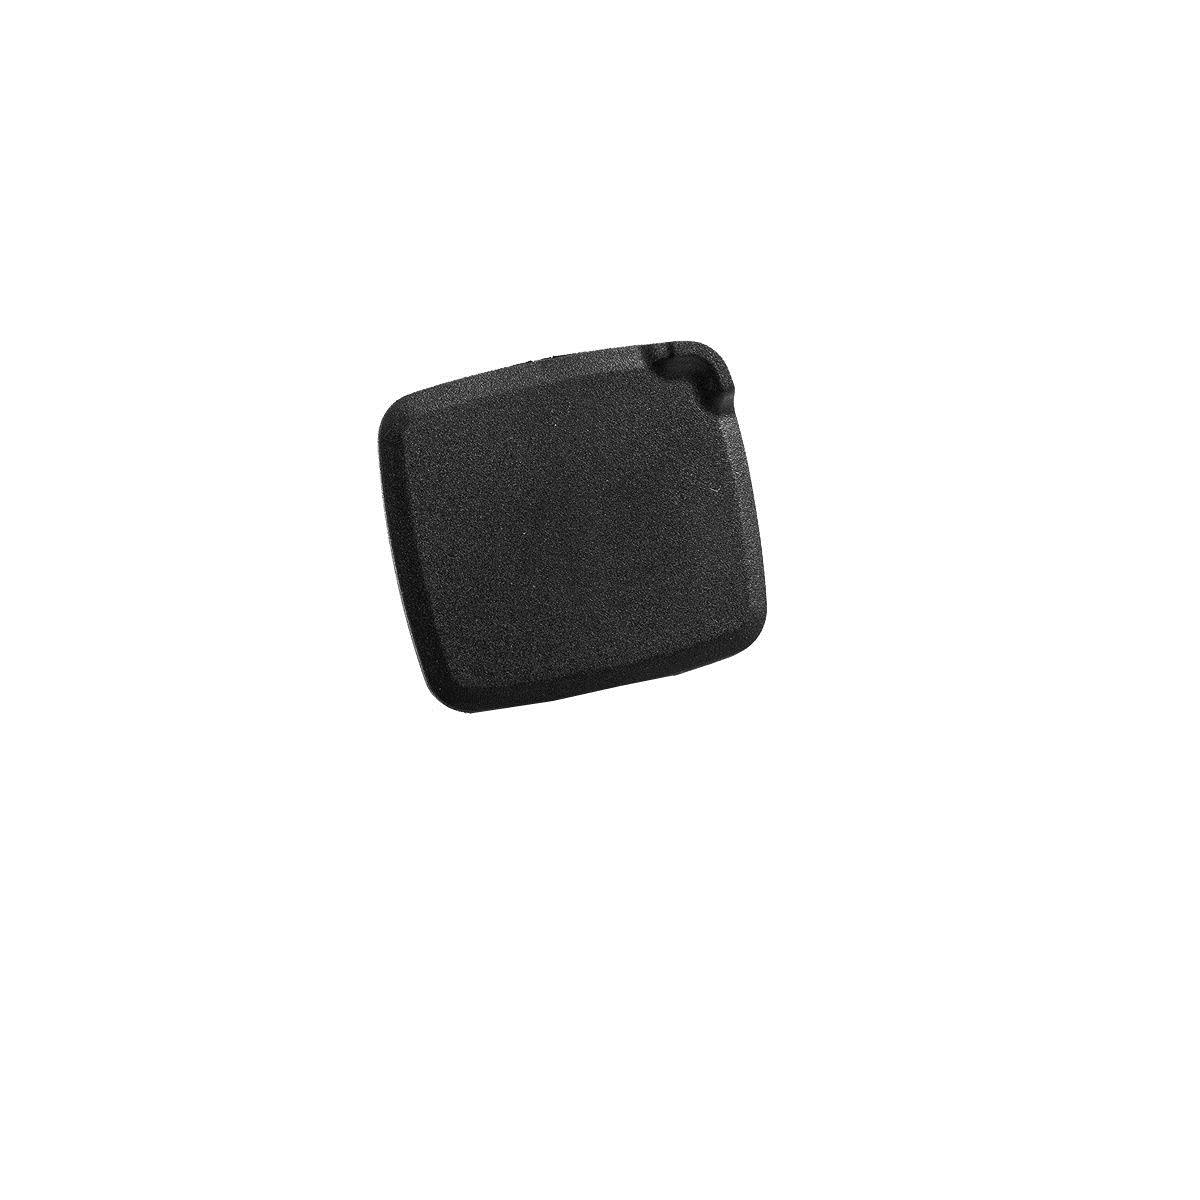 Rubber cover for charging port for CRAFTY, CHASER, LEVEL, PRIME from 2020